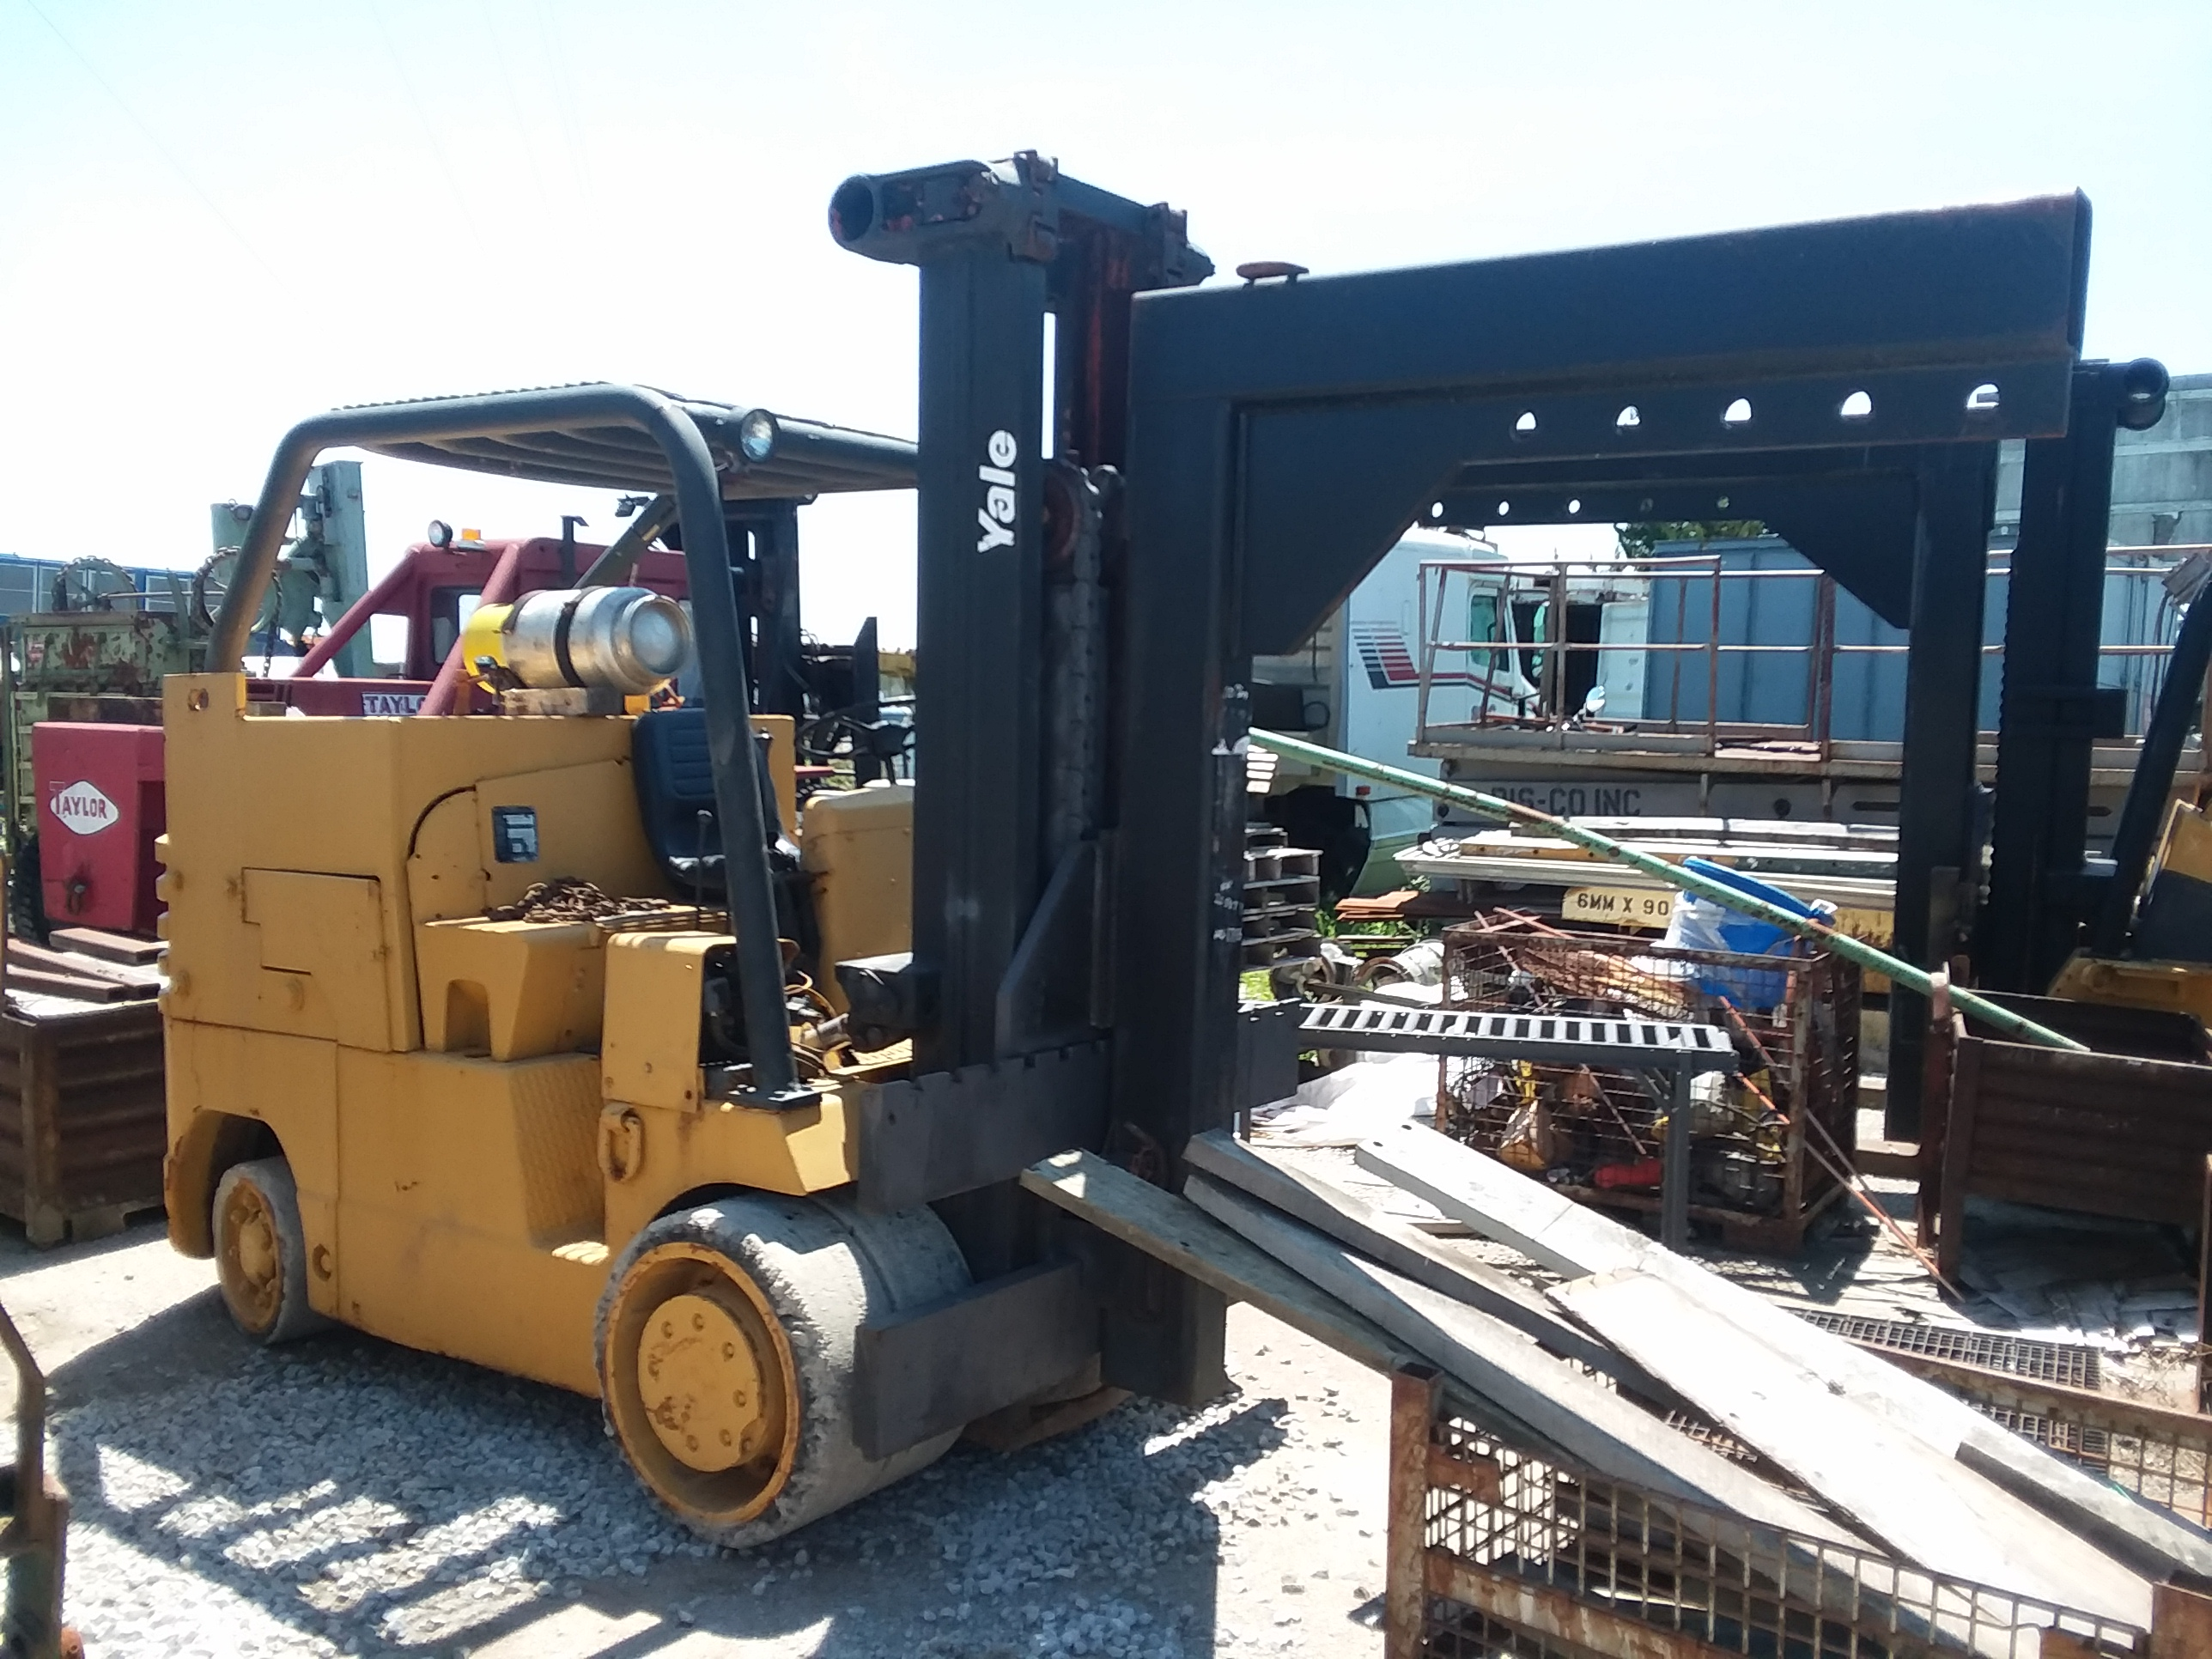 (1) PREOWNED YALE FORKLIFT, MODEL L5-220-MAS, S/N B205877